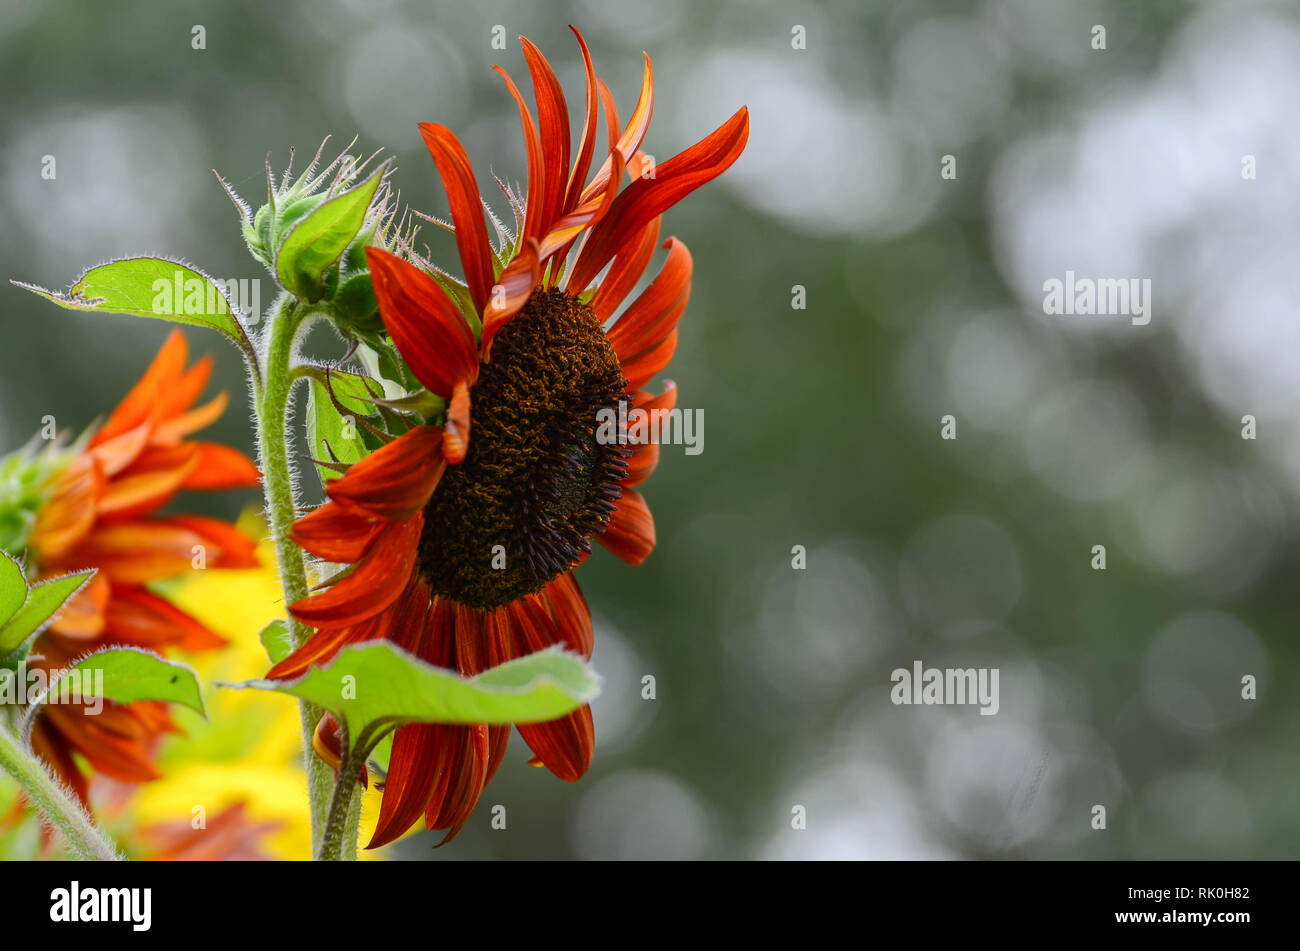 Side view of red sunflower on blurred background - Stock Image